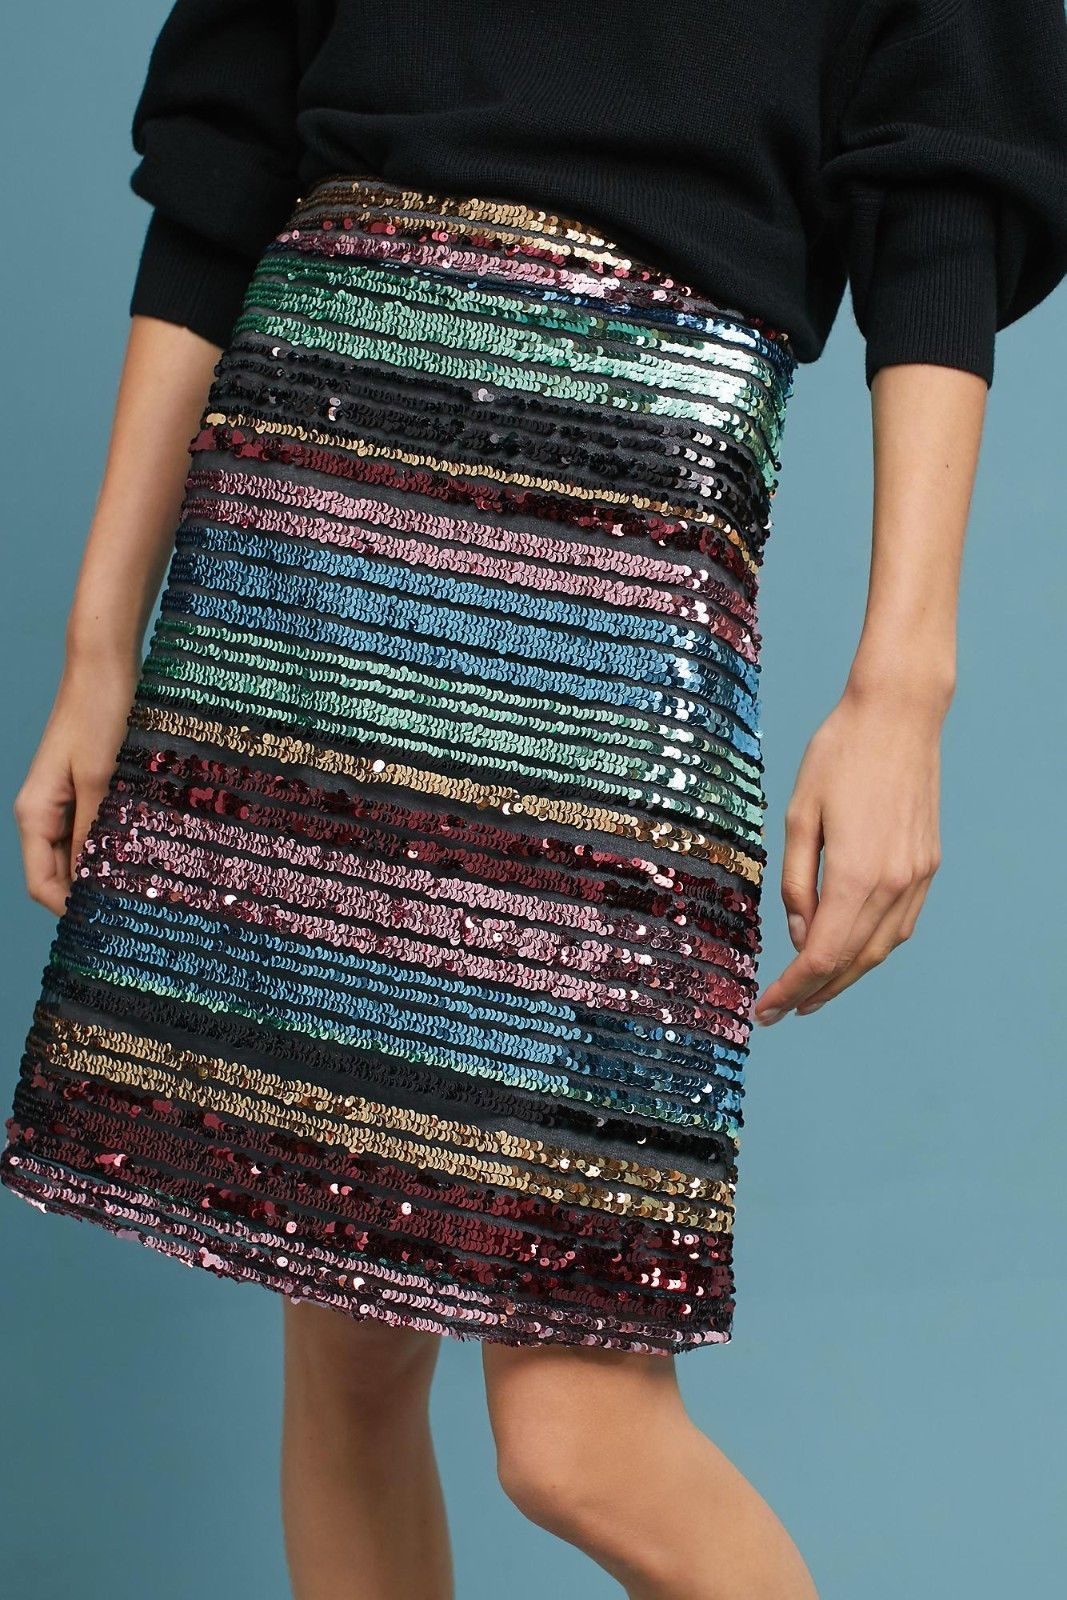 4f6bdc30486f NWT ANTHROPOLOGIE SEQUINED SOIREE STRIPED SKIRT by MOULINETTE SOEURS